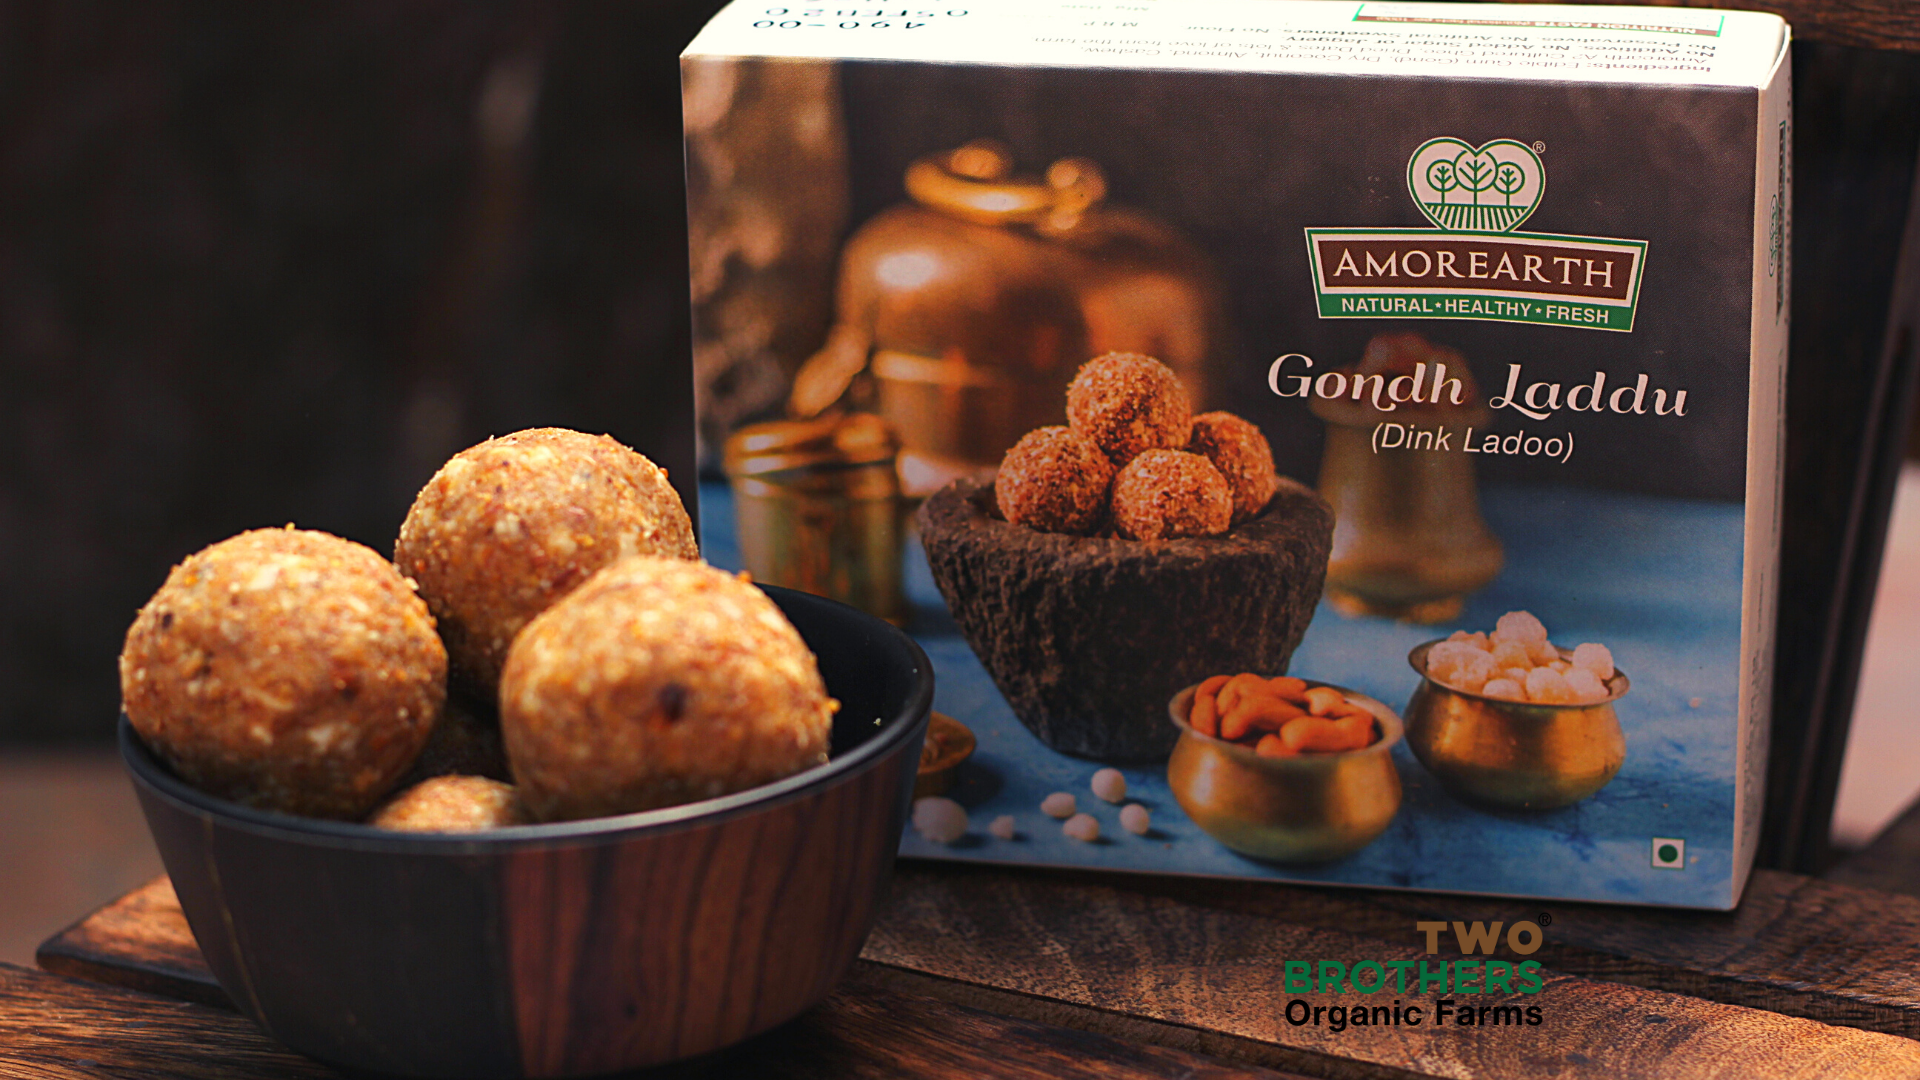 Gond Laddoo, Gondh Laddoo, Dink Laadoo, Laddoo, Gondh, Gondh benefits, What is Gondh, Edible gum, gondh in ayurveda